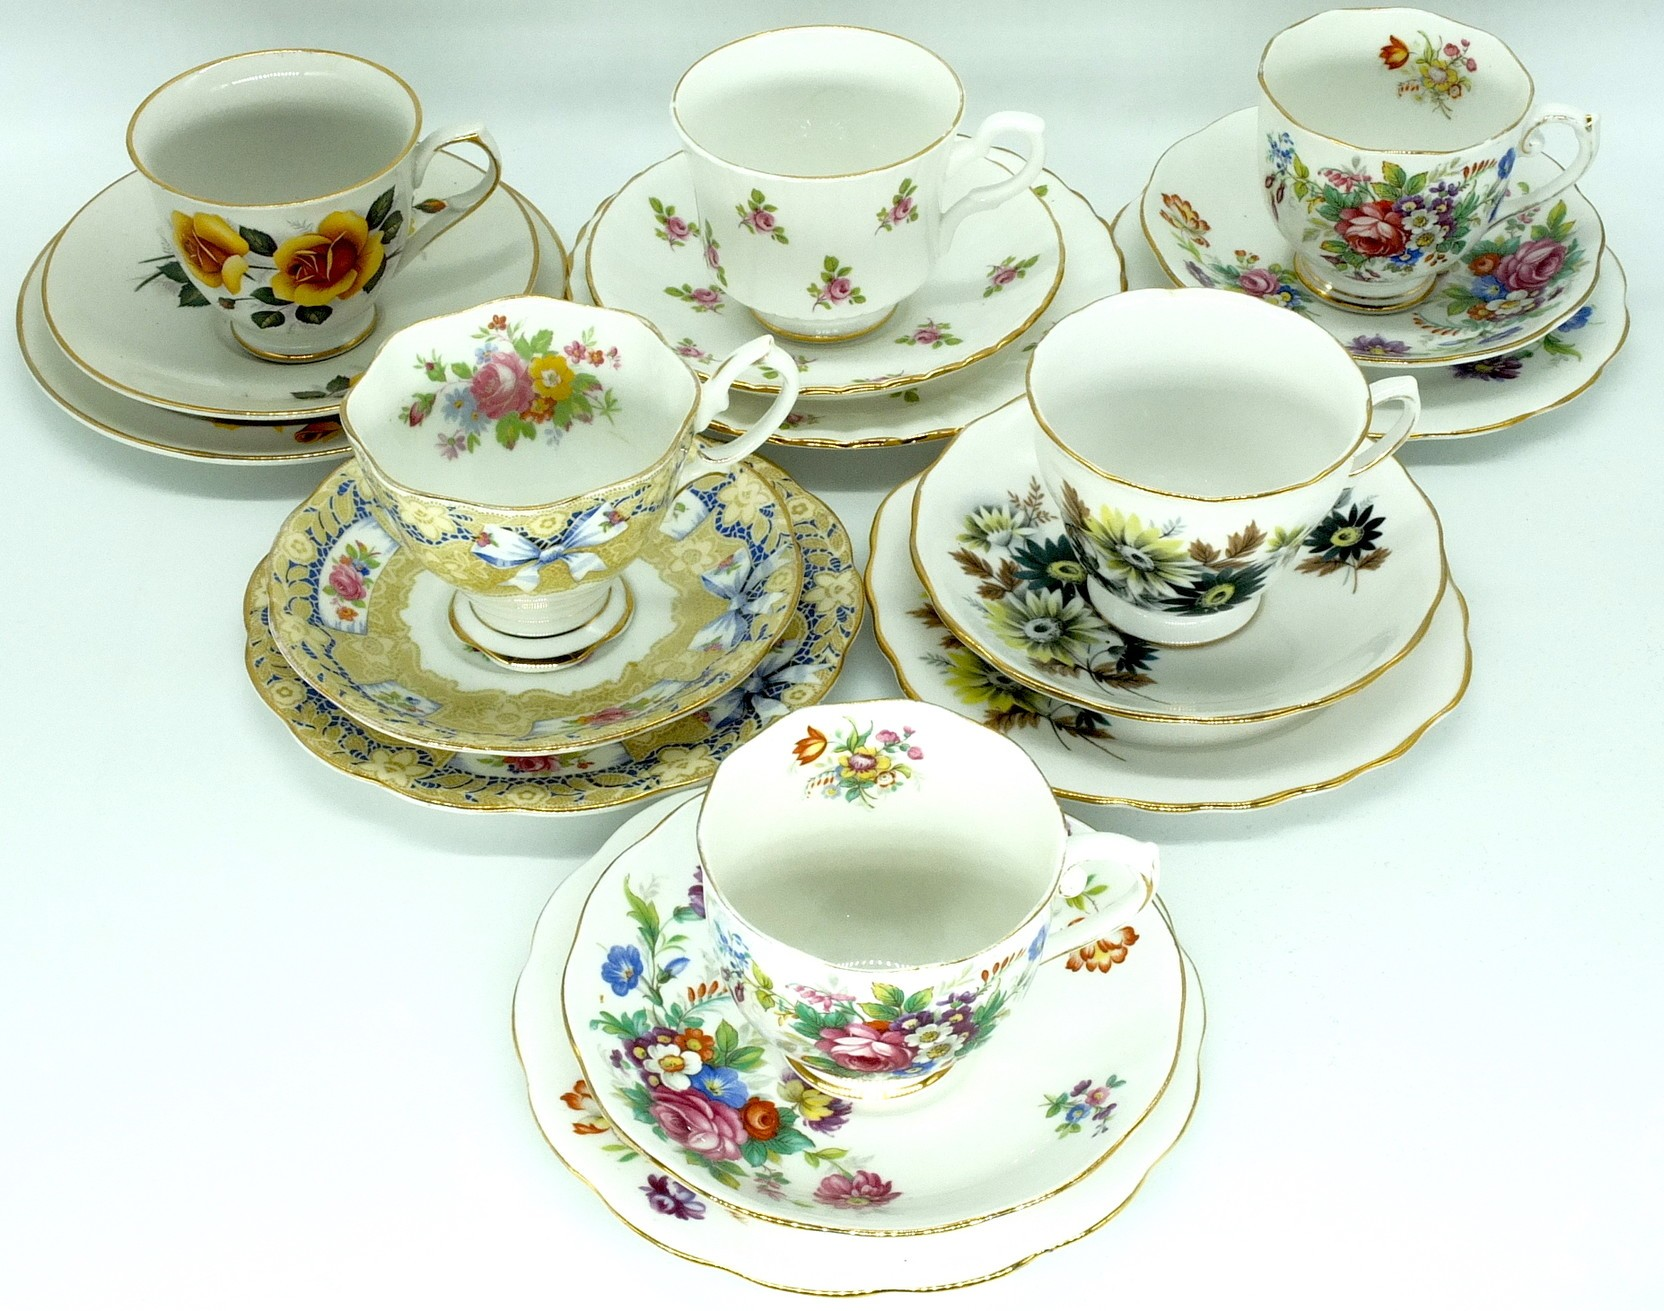 'Group of Six English Tea Trios, Including Roslyn, Old Foley, Royal Stafford, Royal Albert and Royal Vale'